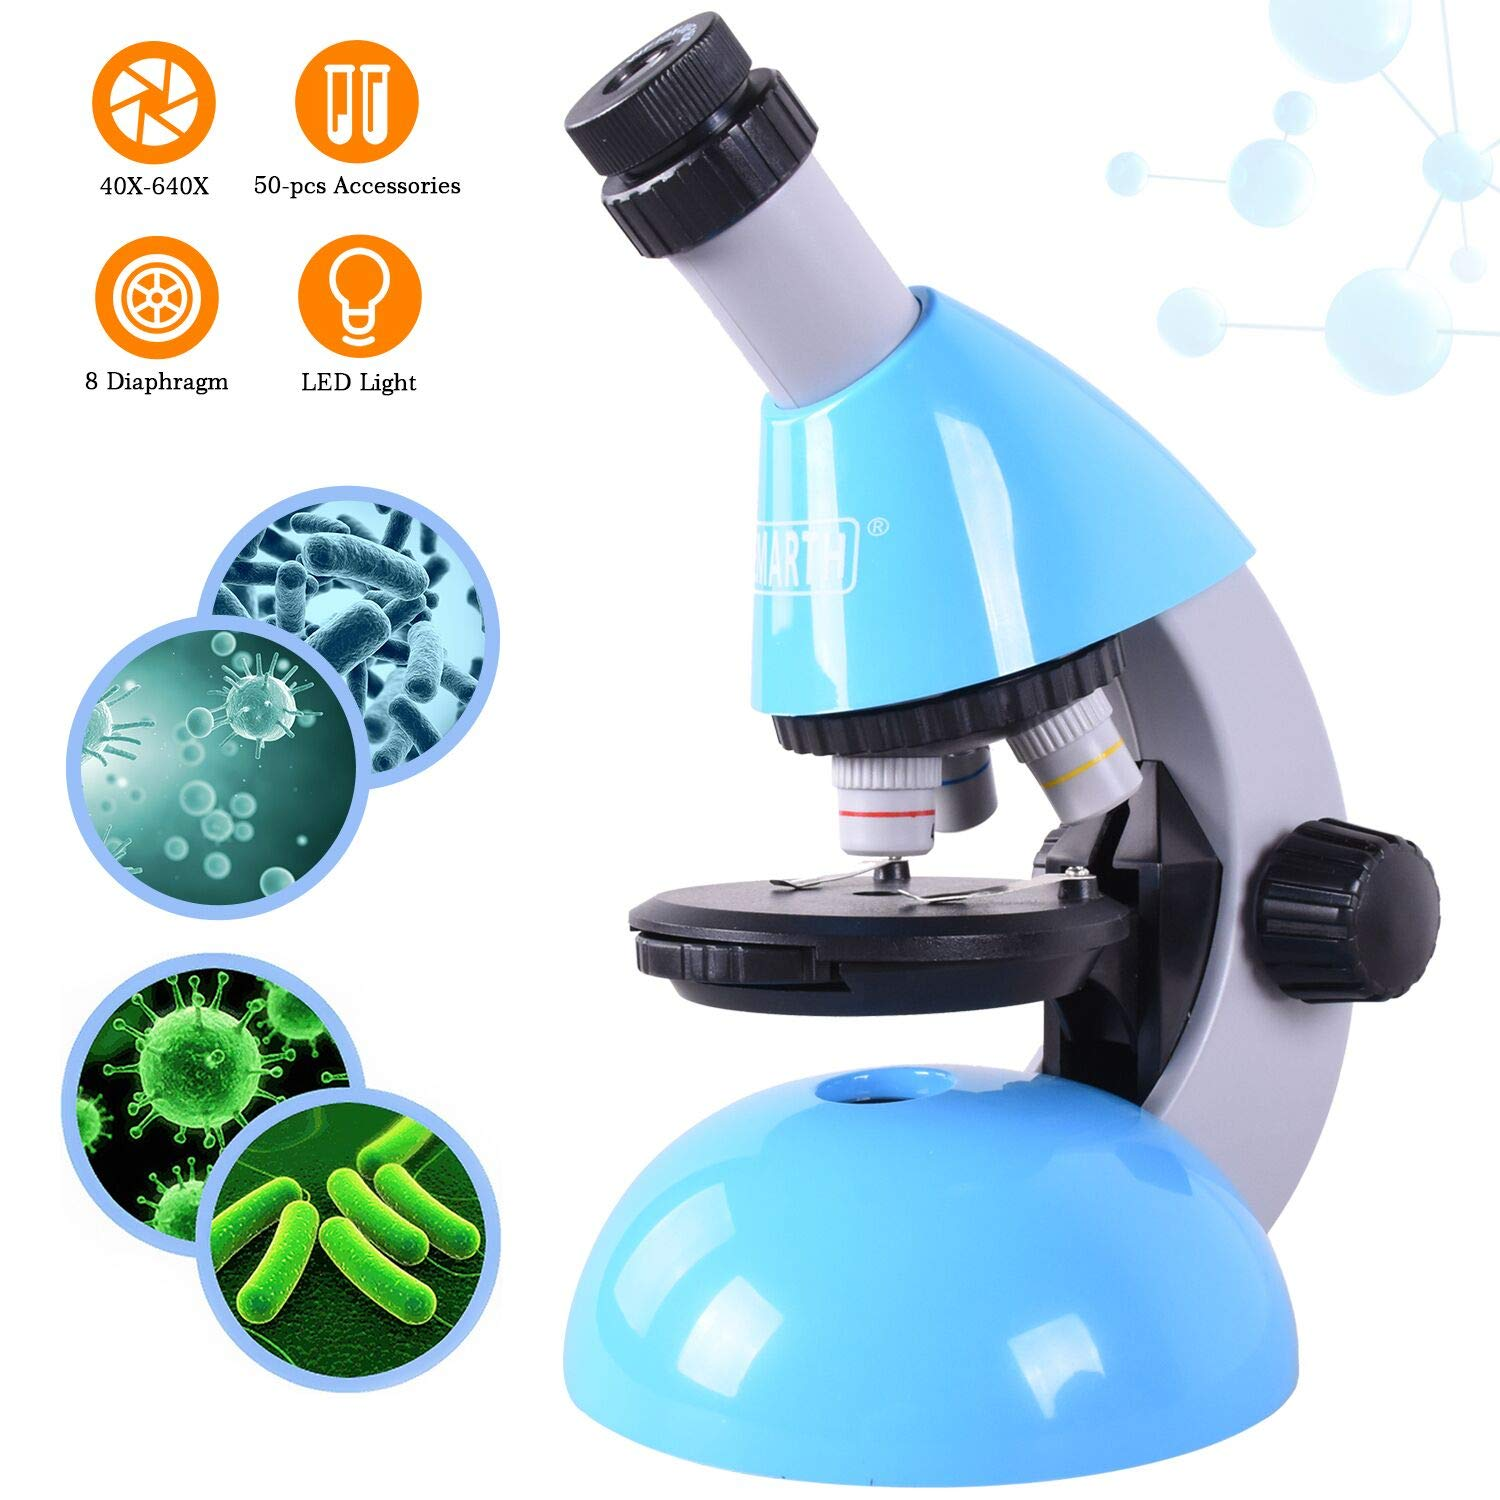 Elecfly Microscope, Kids Microscope 40X- 640X with Science Kits Beginners Microscope Includes 25 Slides for Student Children-Blue by ECOOPRO